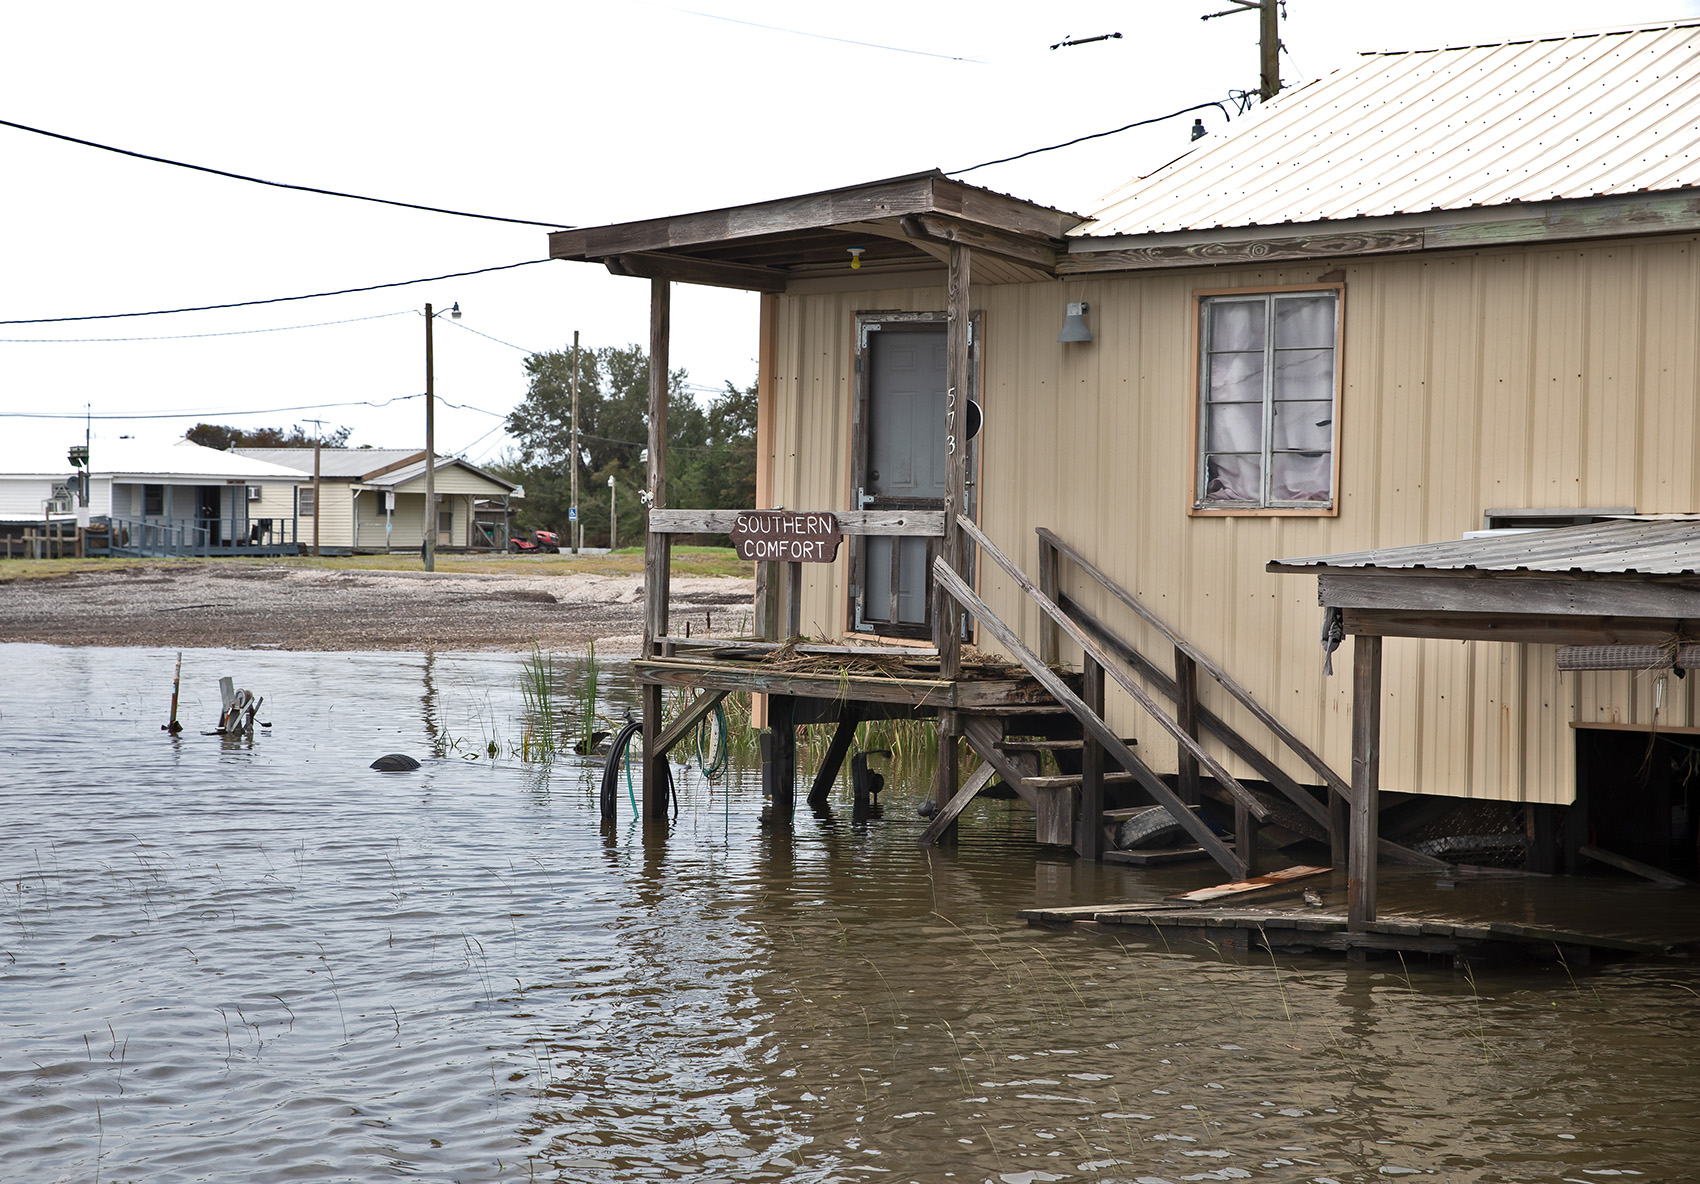 Floodwaters surround a fishing camp next to the boat launch on the Isle de Jean Charles, Louisiana.